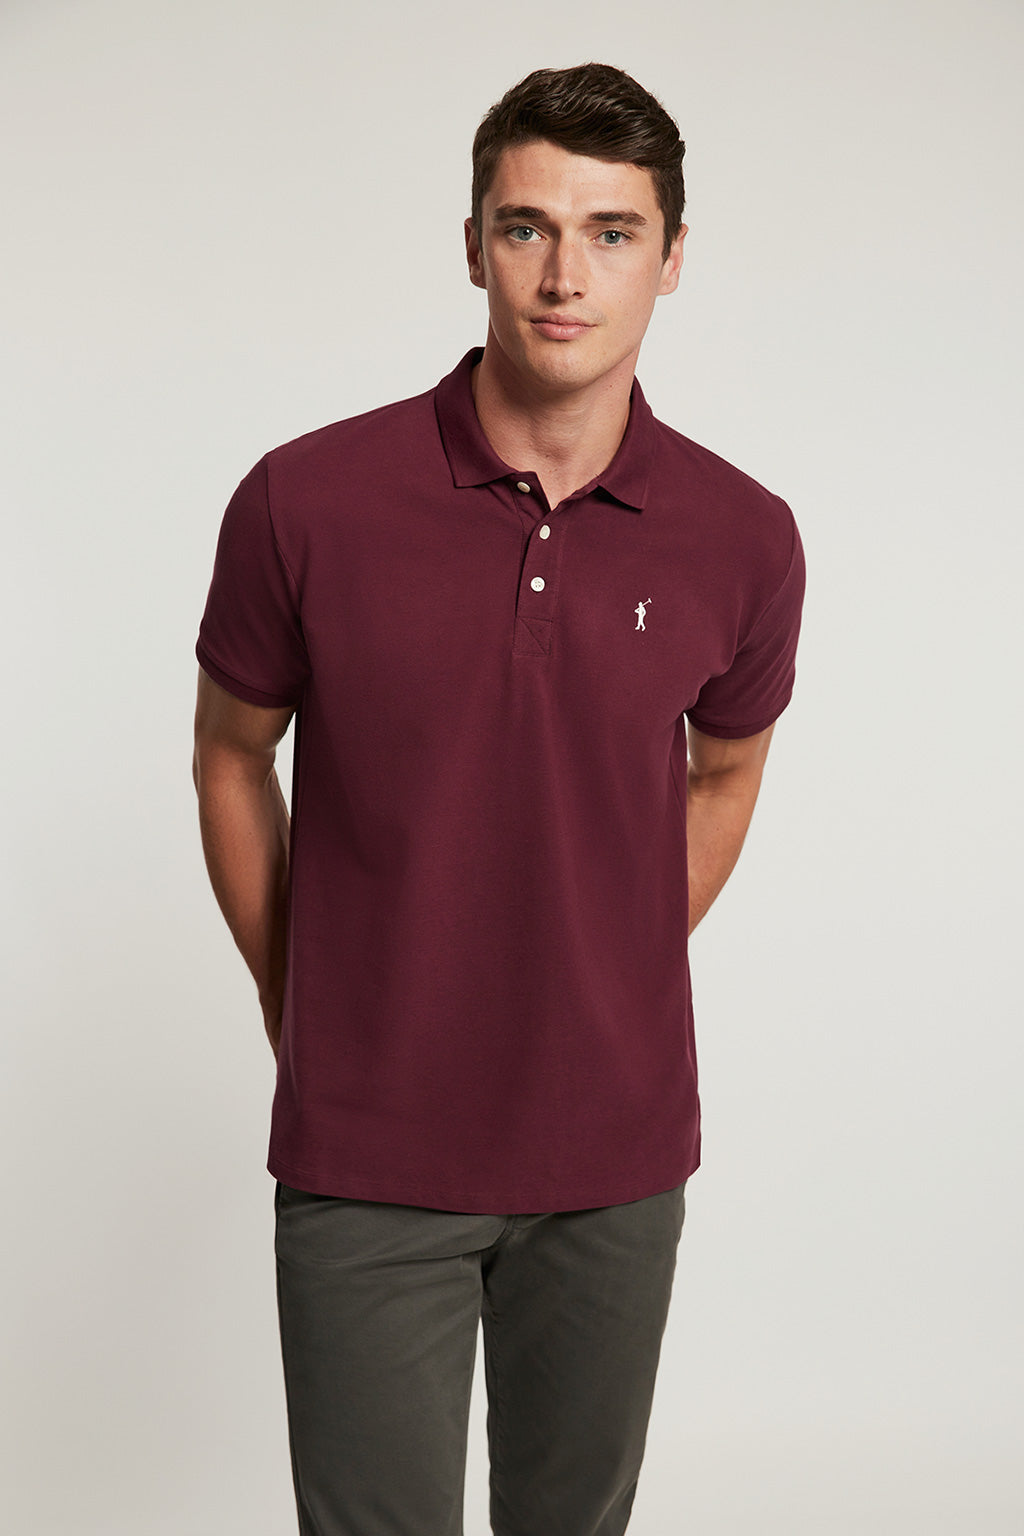 Burgundy organic polo shirt with embroidered logo